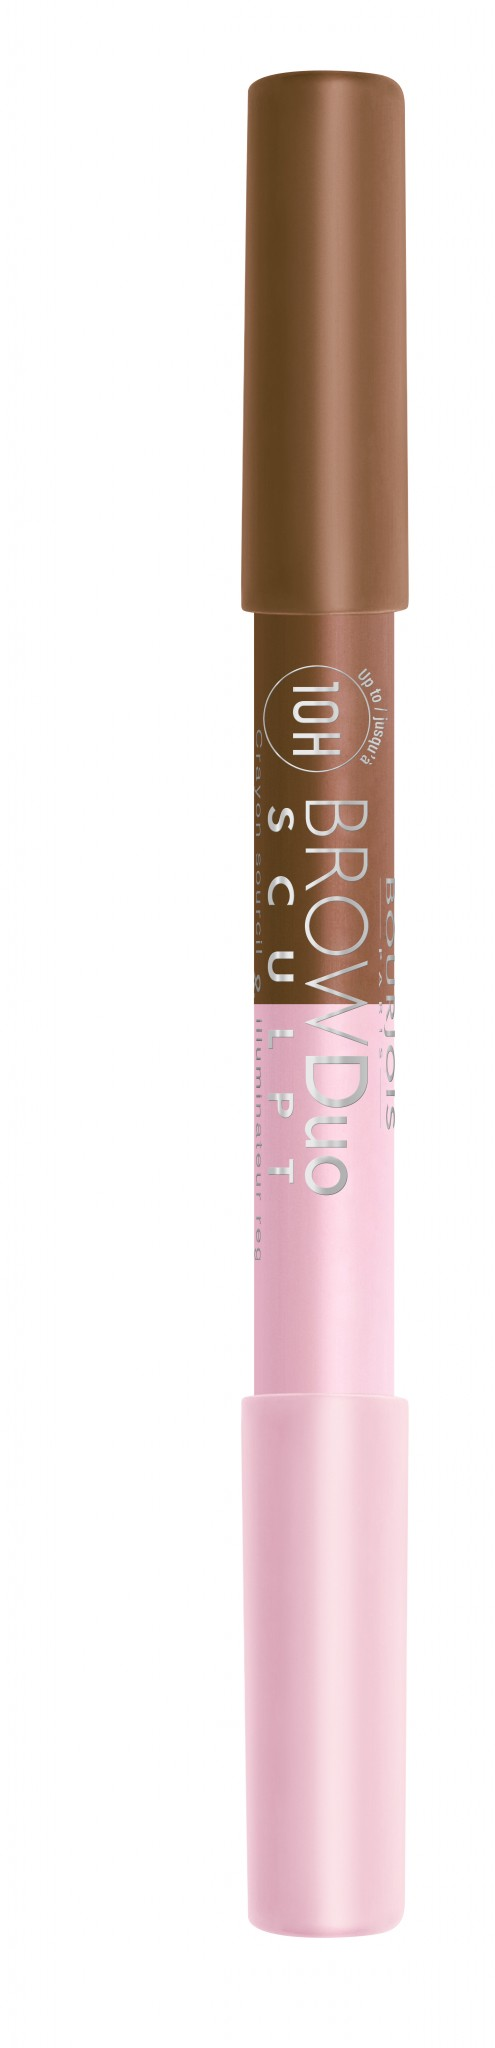 hd-brow-duo-sculpt-21_closed